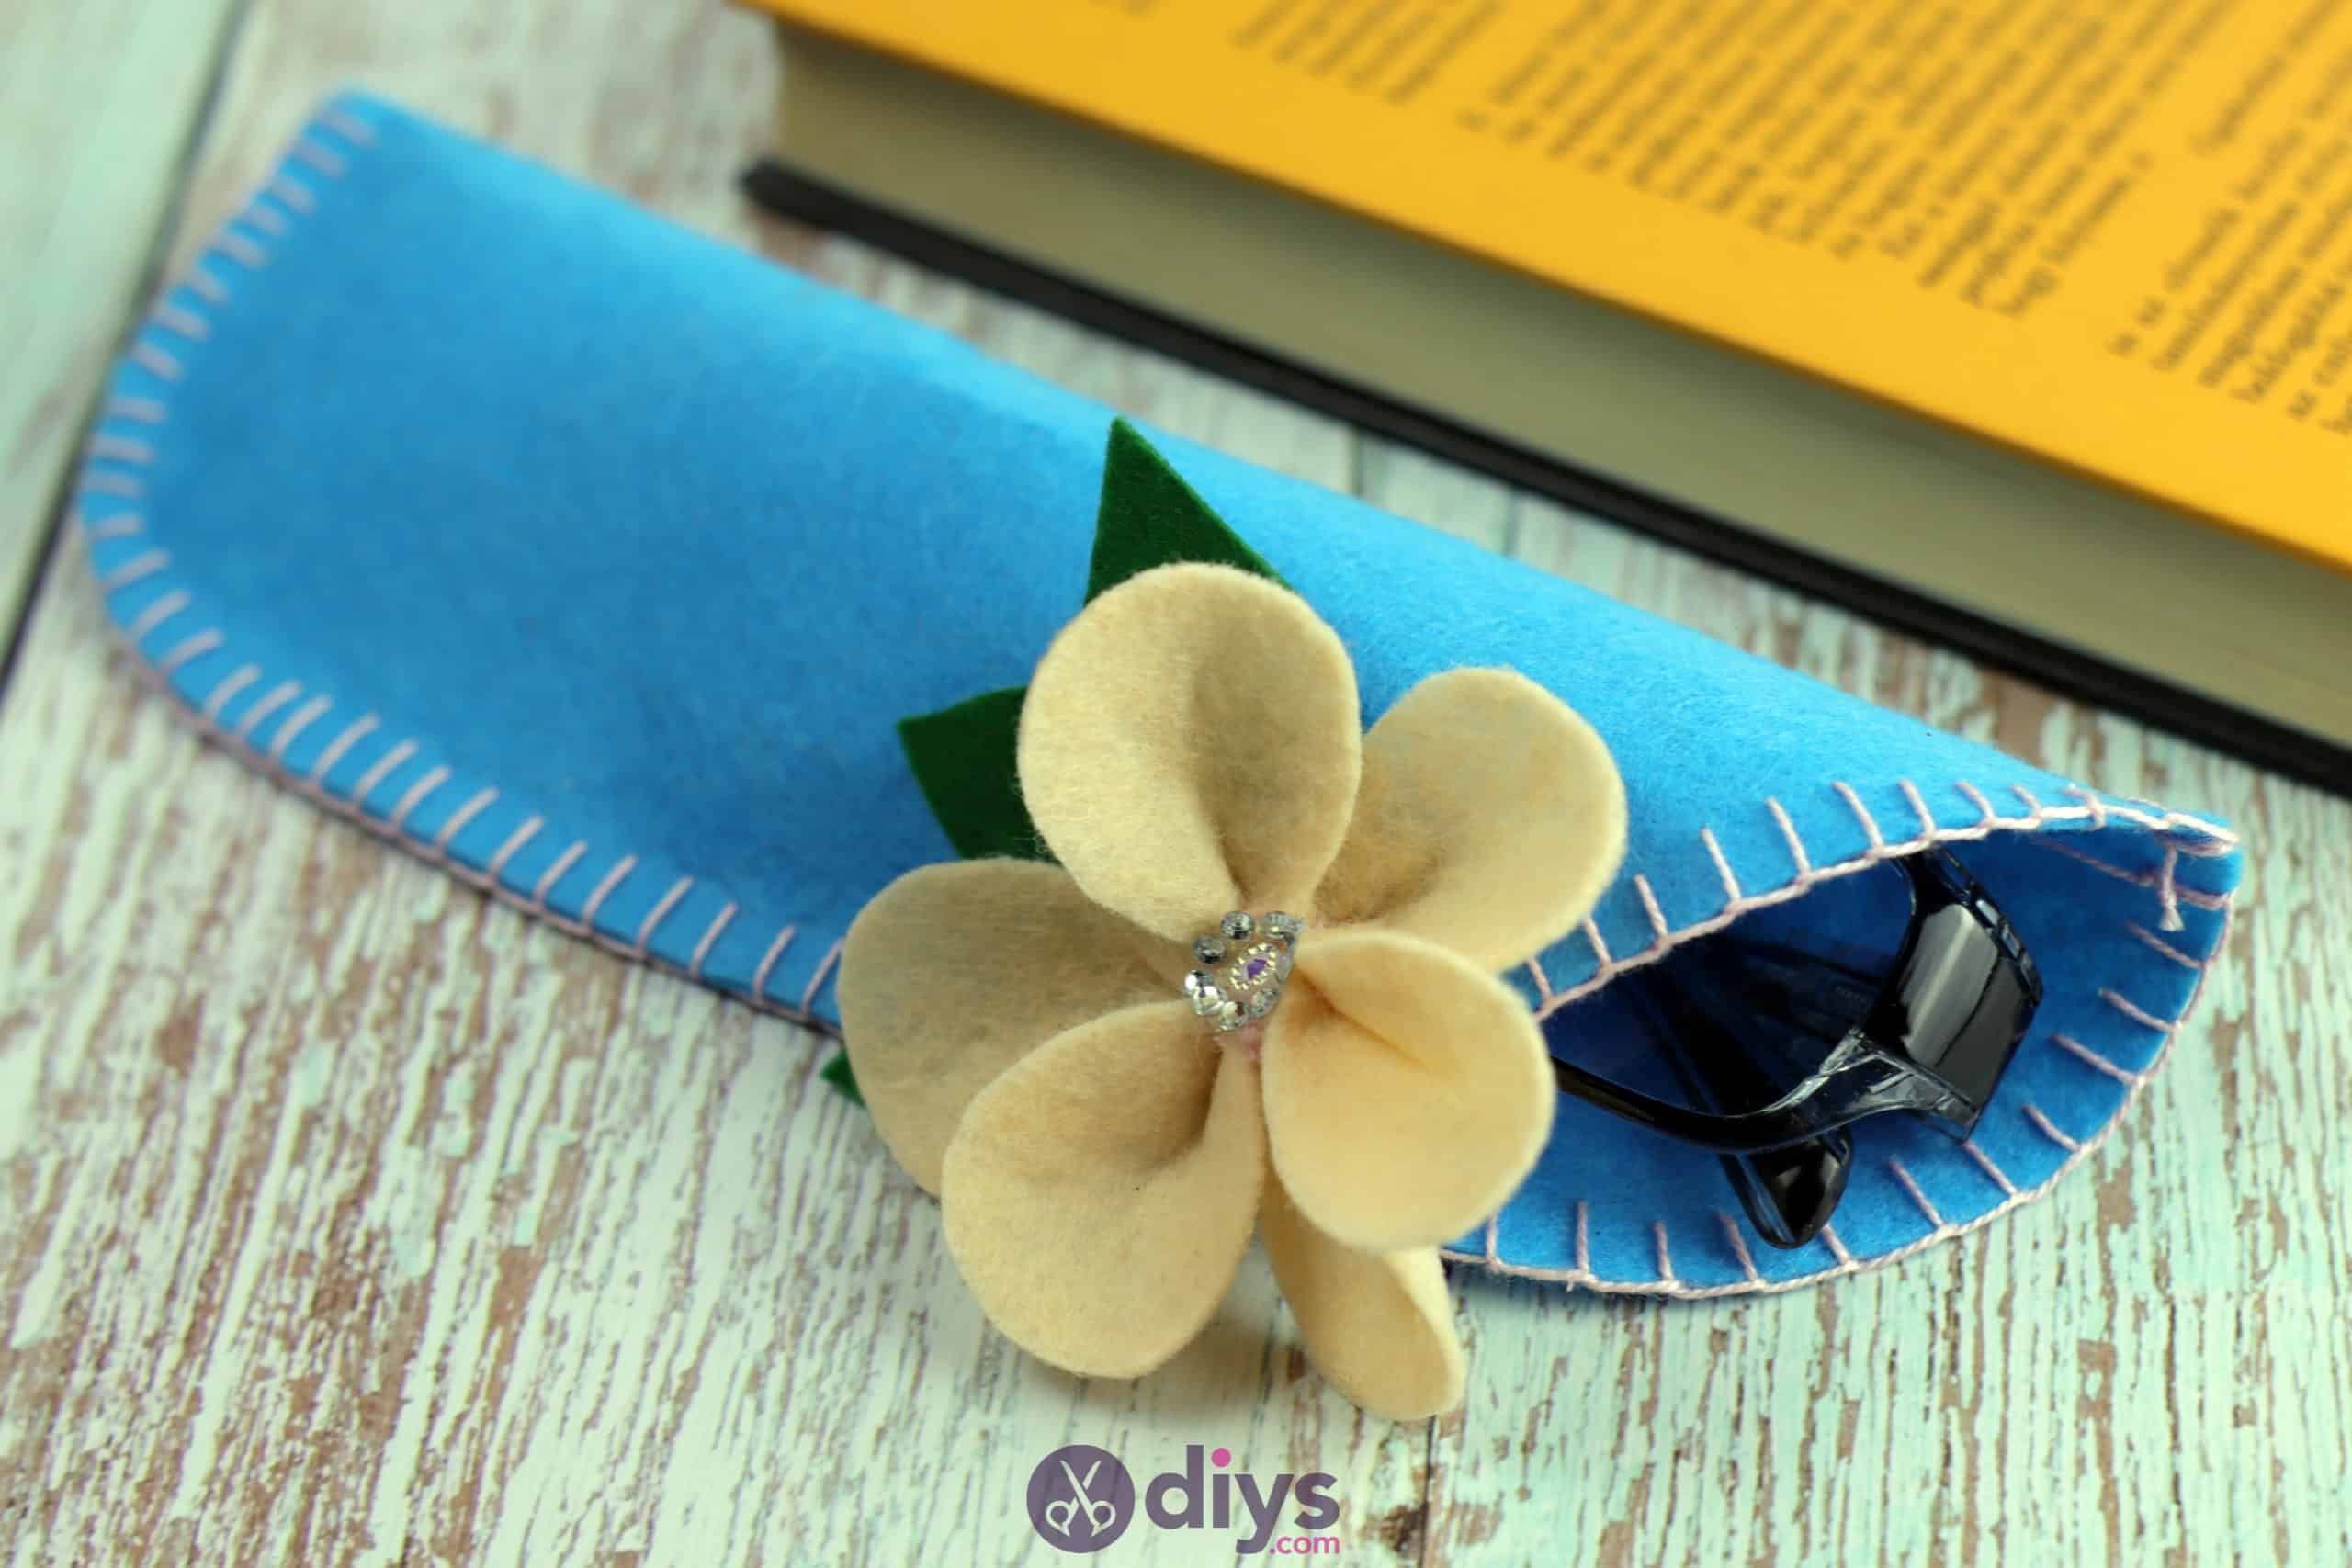 Diy simple felt glasses case colorful and smooth